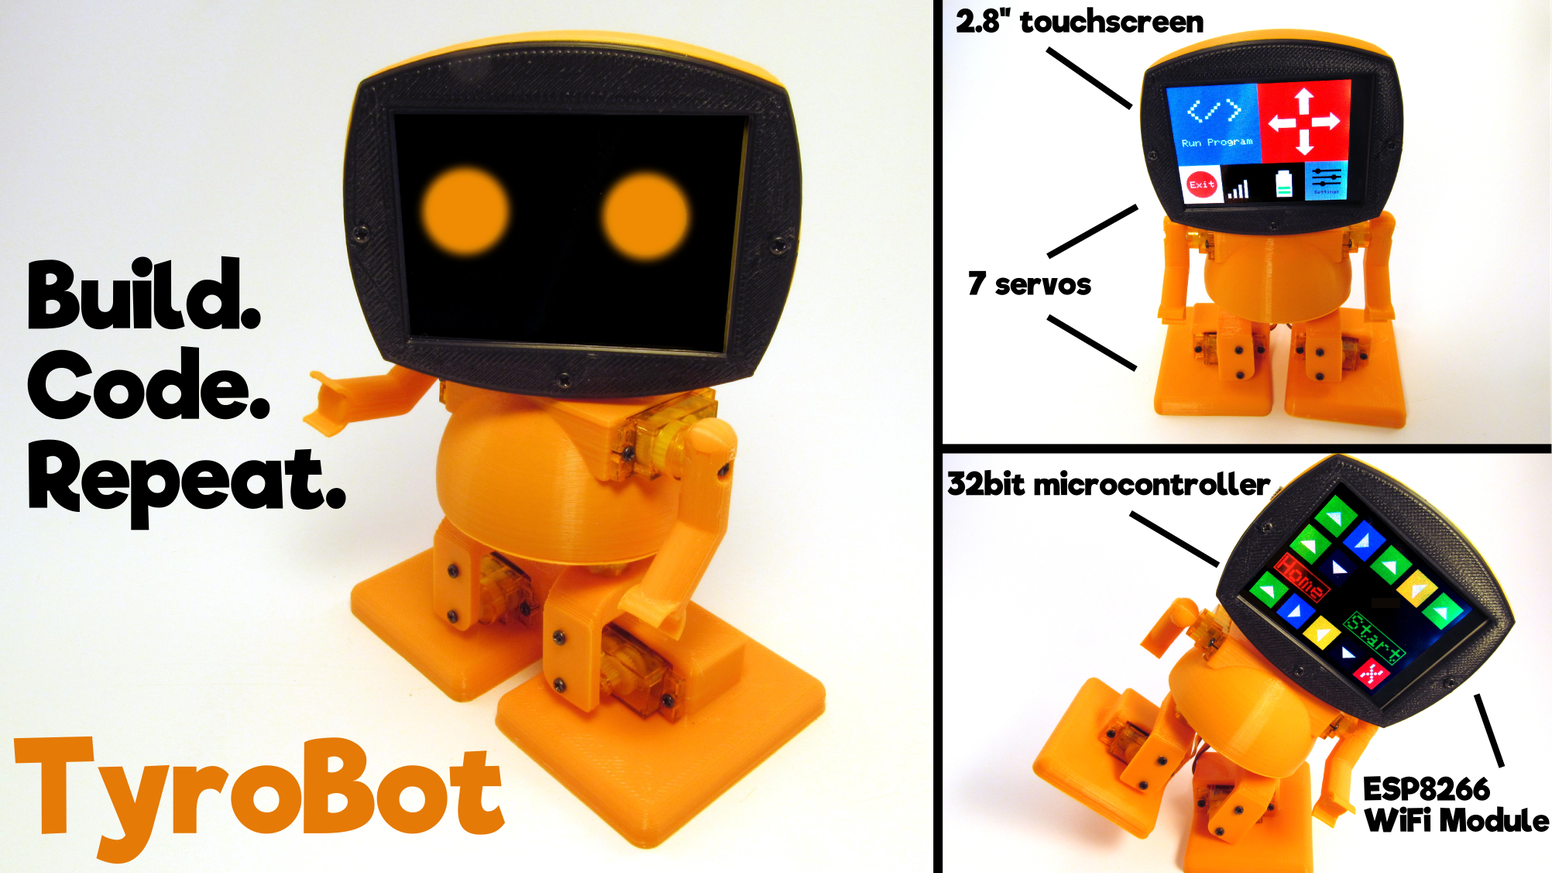 Teach yourself robotics and programming in one ultimate 3D printed robot kit. Open source, high tech, and novice friendly.